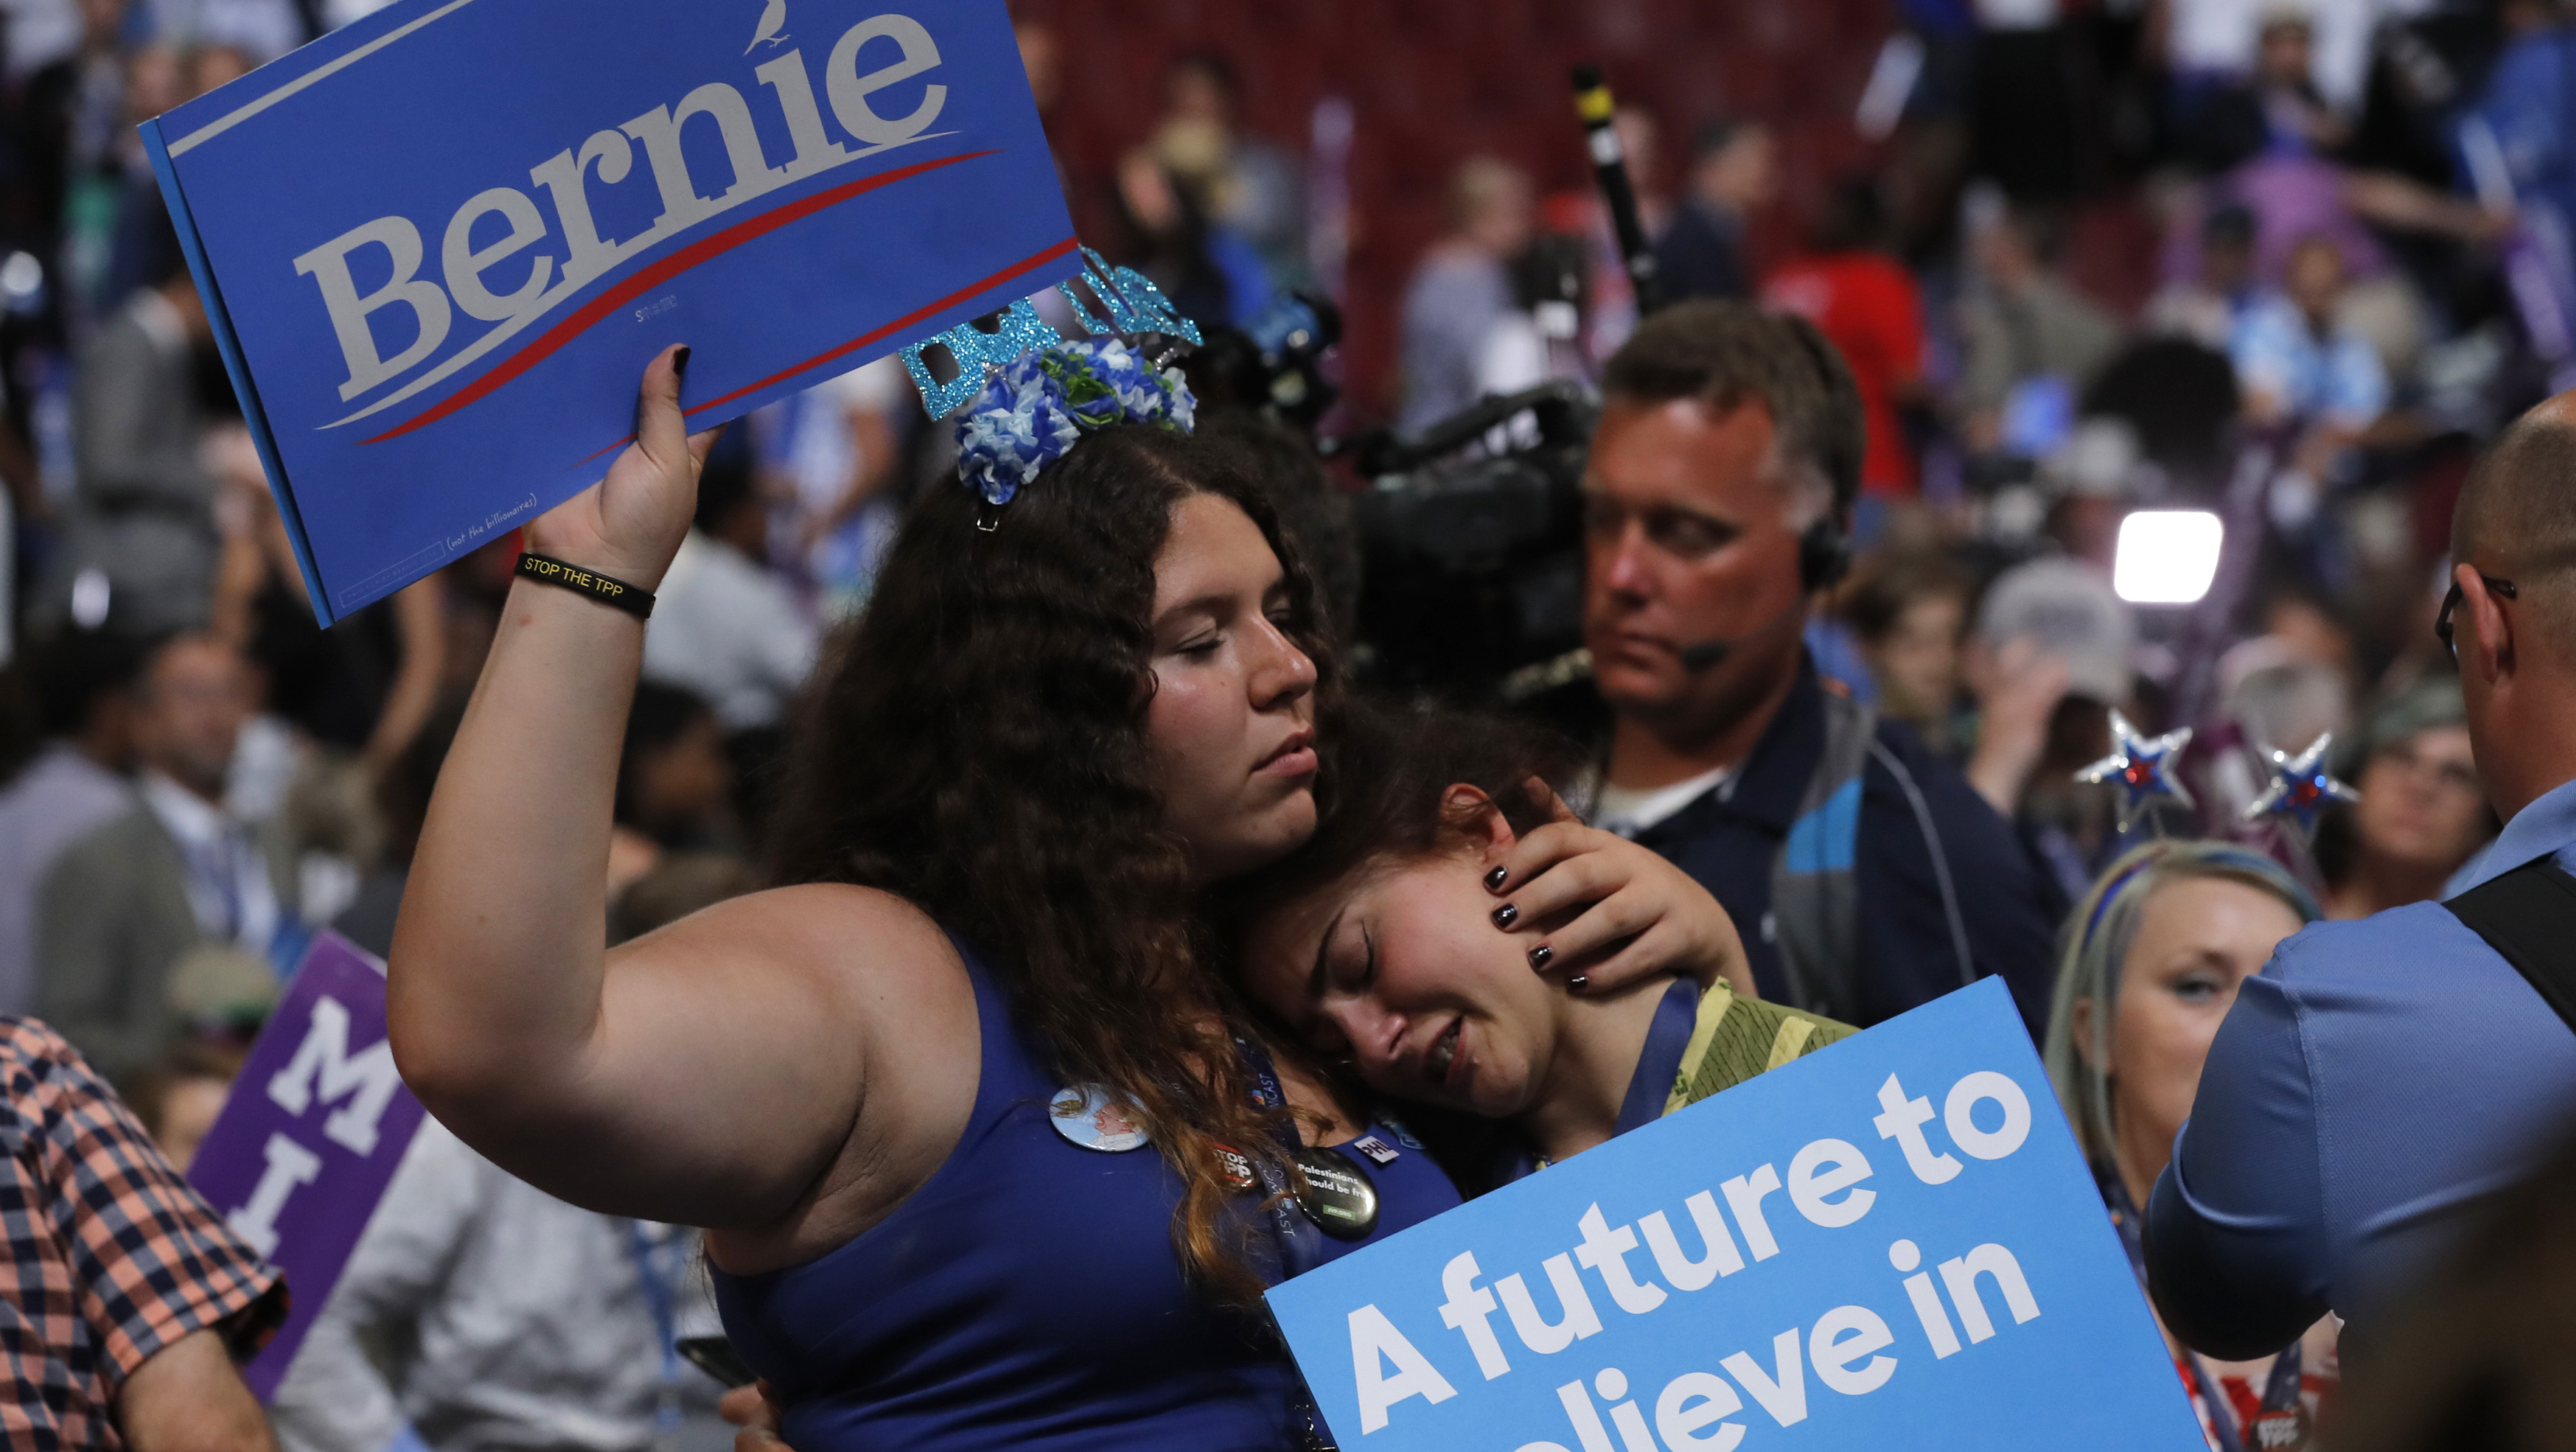 Two supporters of former Democratic U.S. presidential candidate Sanders hug at the end of Sanders' speech during the first session at the Democratic National Convention in Philadelphia